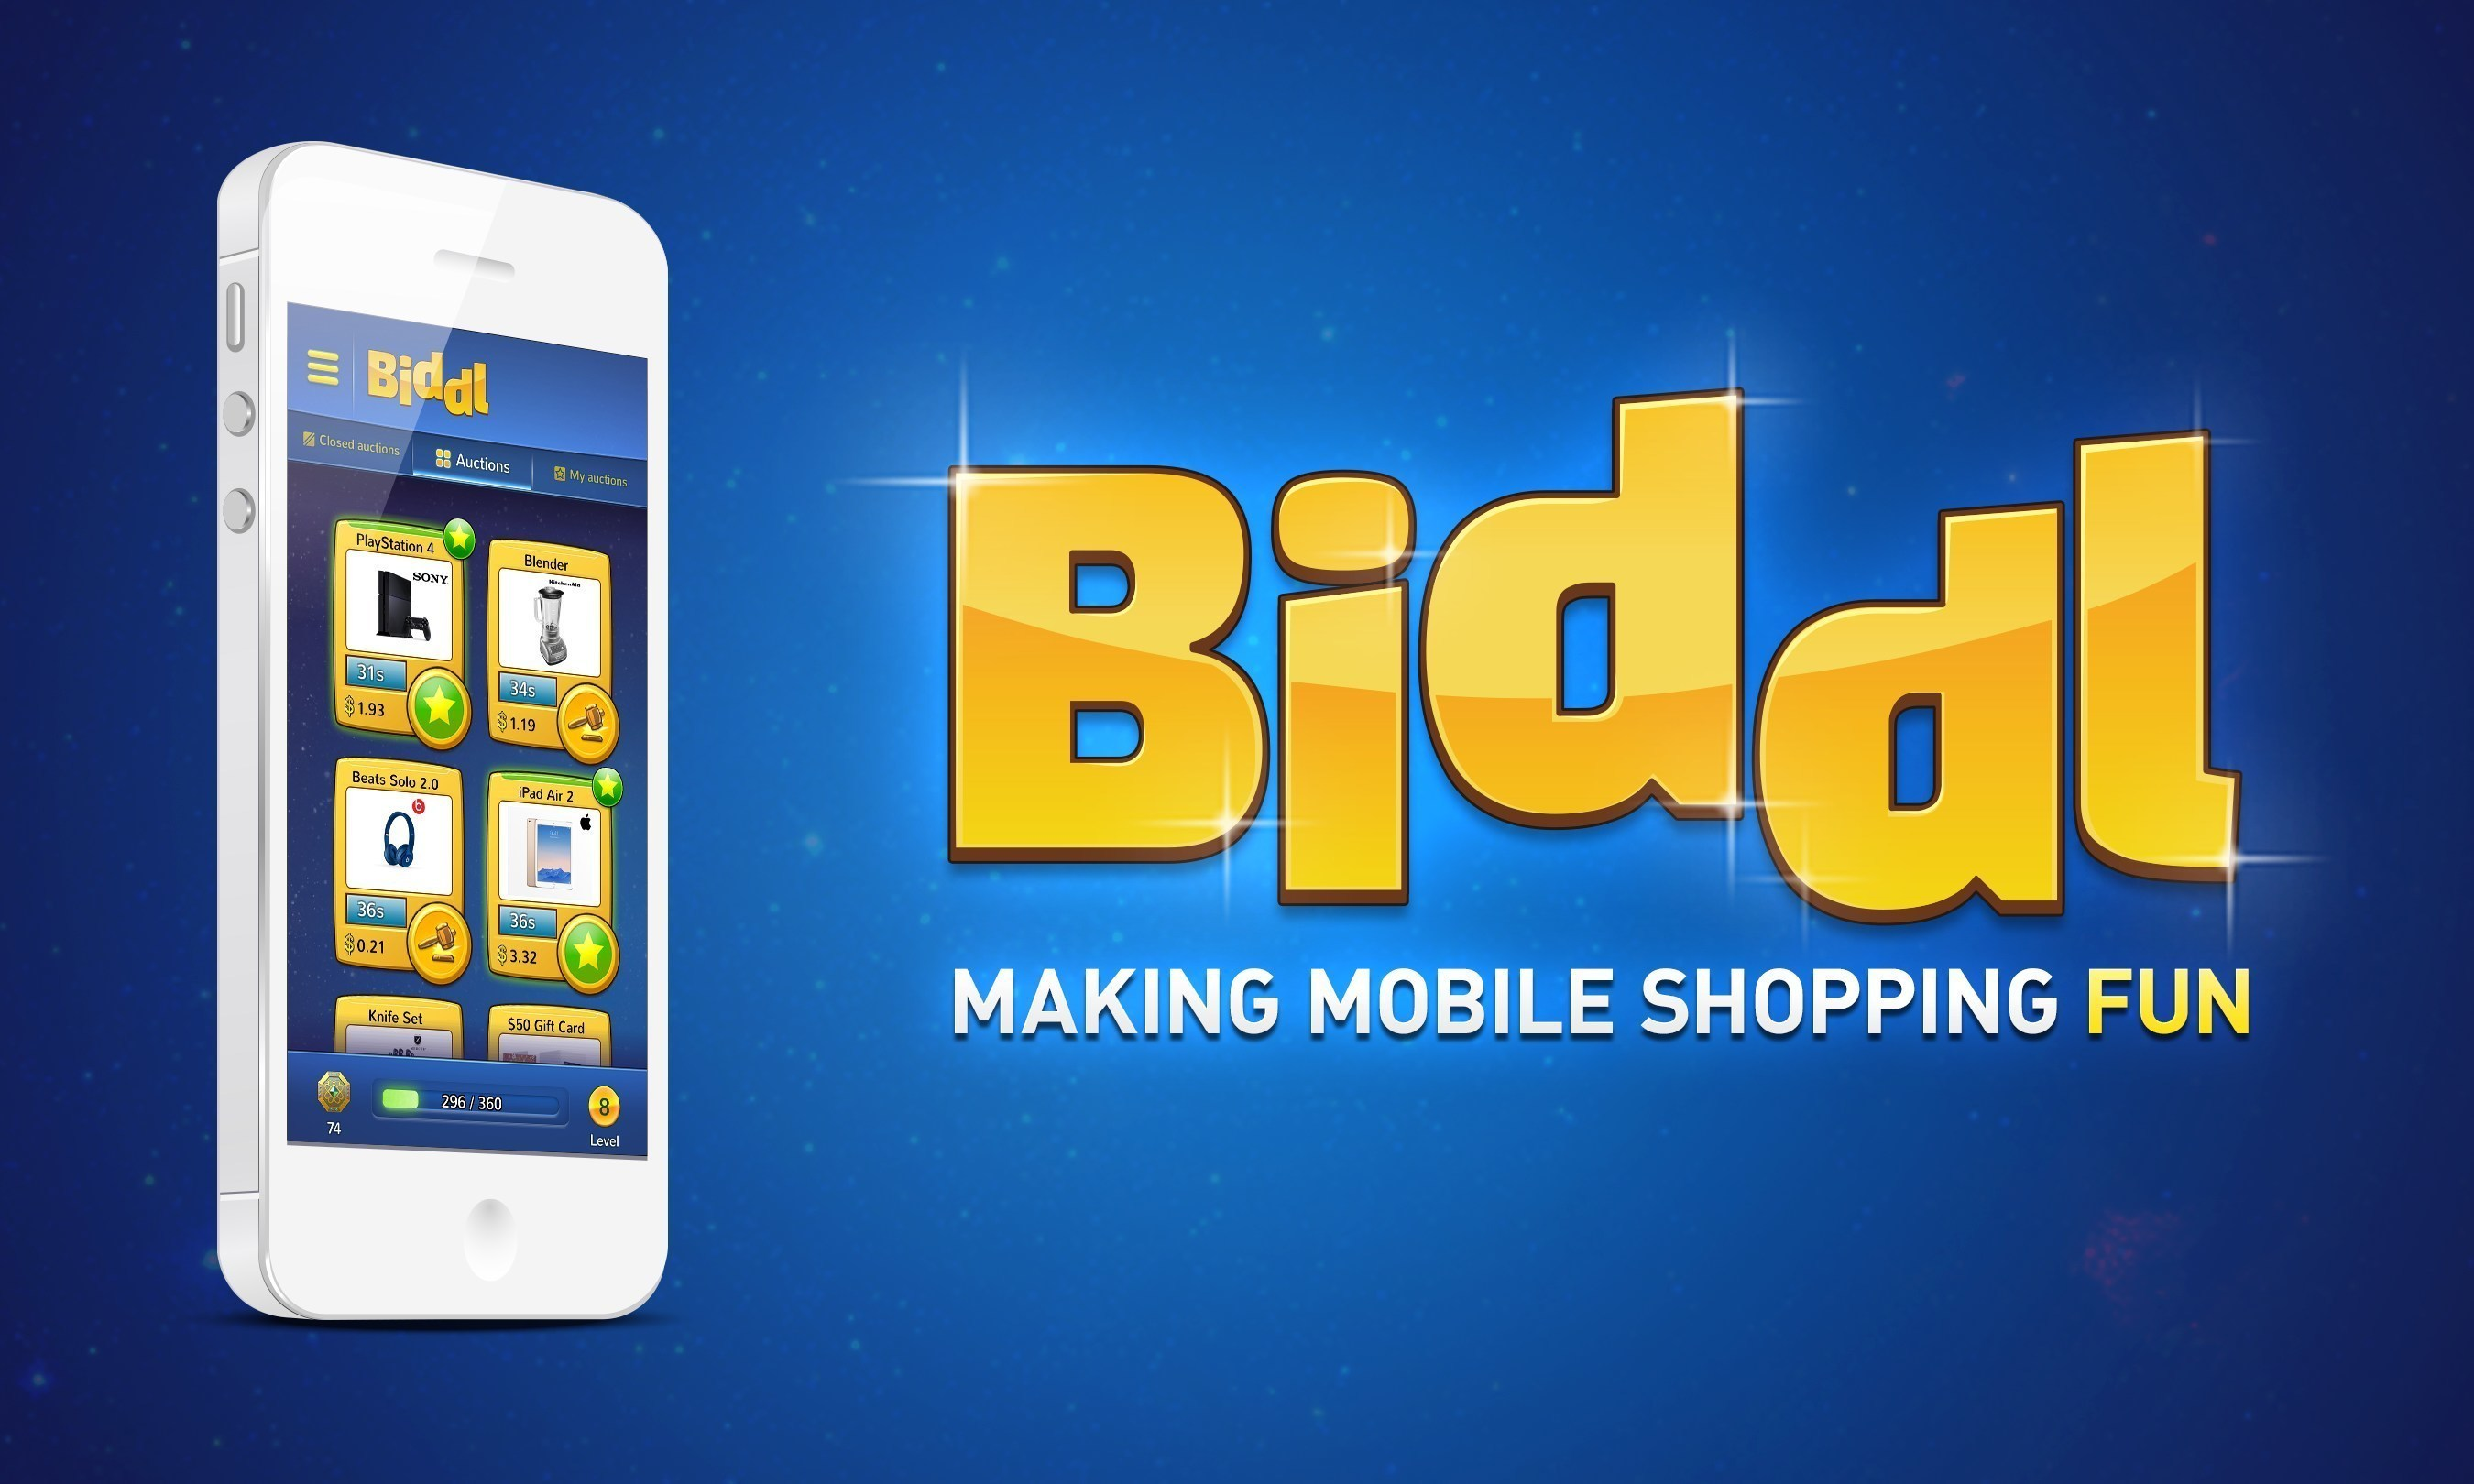 Biddl, the first mobile-only shopping game, aims to make mobile shopping fun by combining mobile game mechanics with easy-to-use shopping features. The result: Biddl allows you to make direct purchases, bid on auctions, hunt for bargains, and play a fun mobile game at the same time wherever you are. Biddl is available for free in the iOS App Store and Google Play Store today.